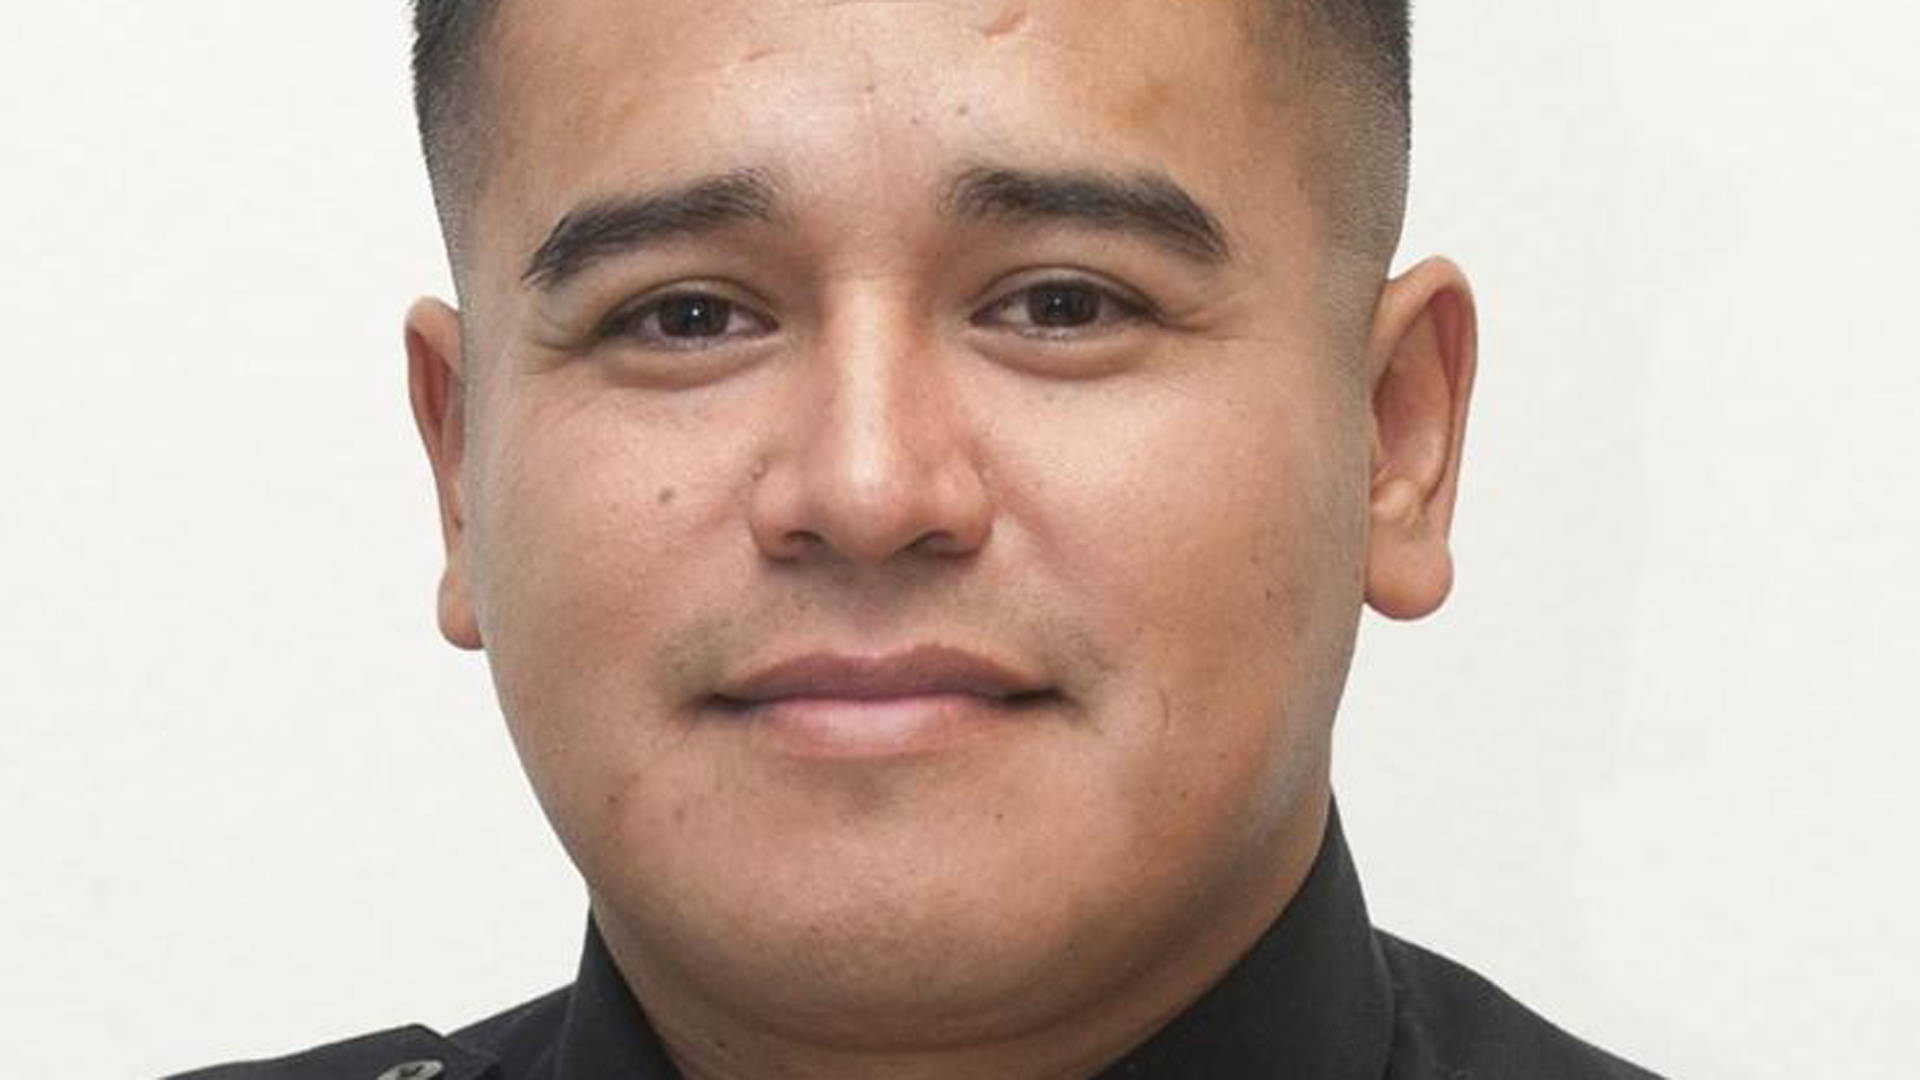 Lemoore police Officer Jonathan Diaz is seen in a photo tweeted by the Los Angeles County Sheriff's Department on Nov. 4, 2019.